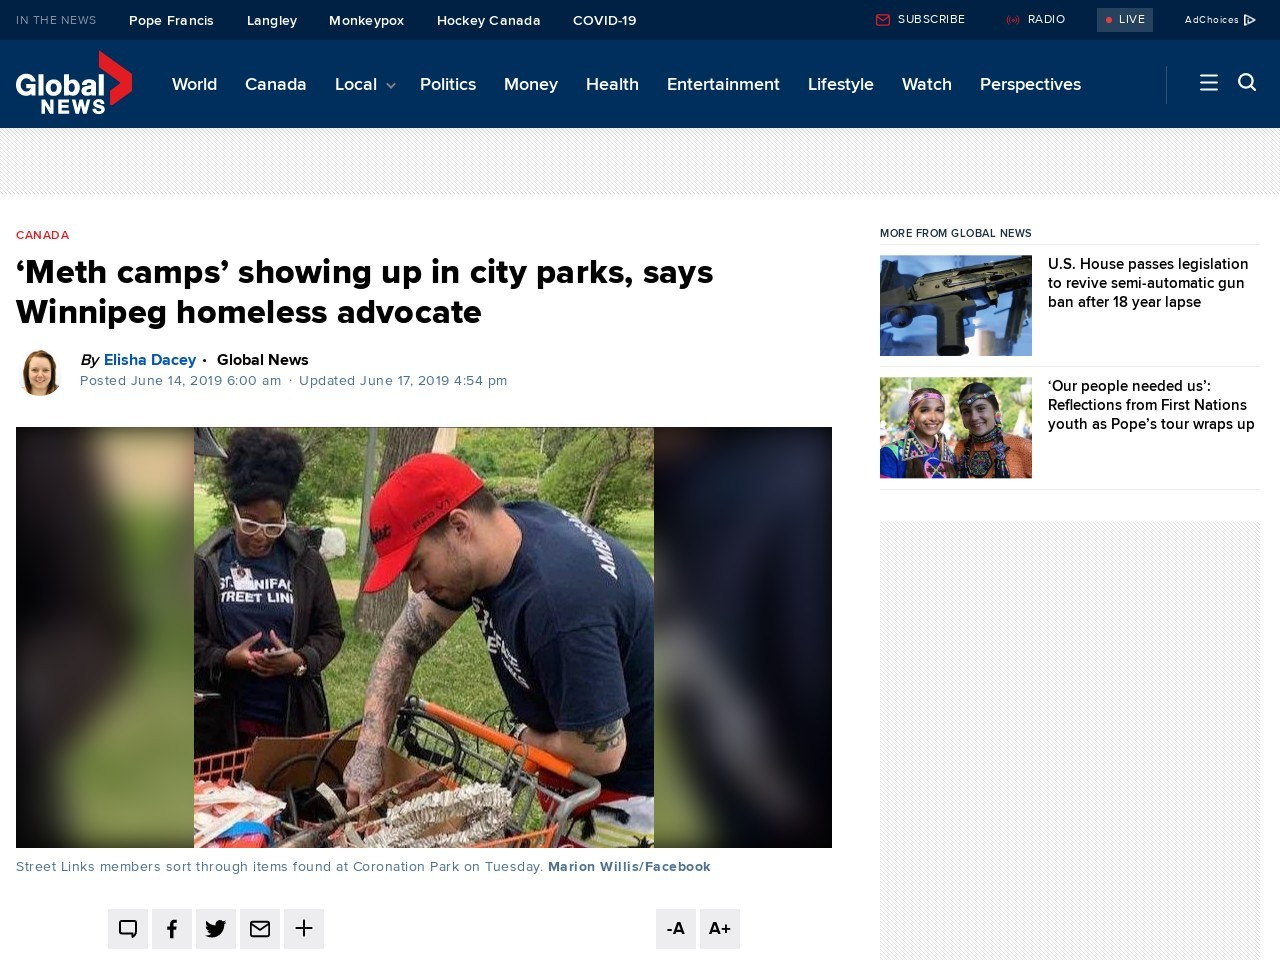 'Meth camps' showing up in city parks, says Winnipeg homeless advocate